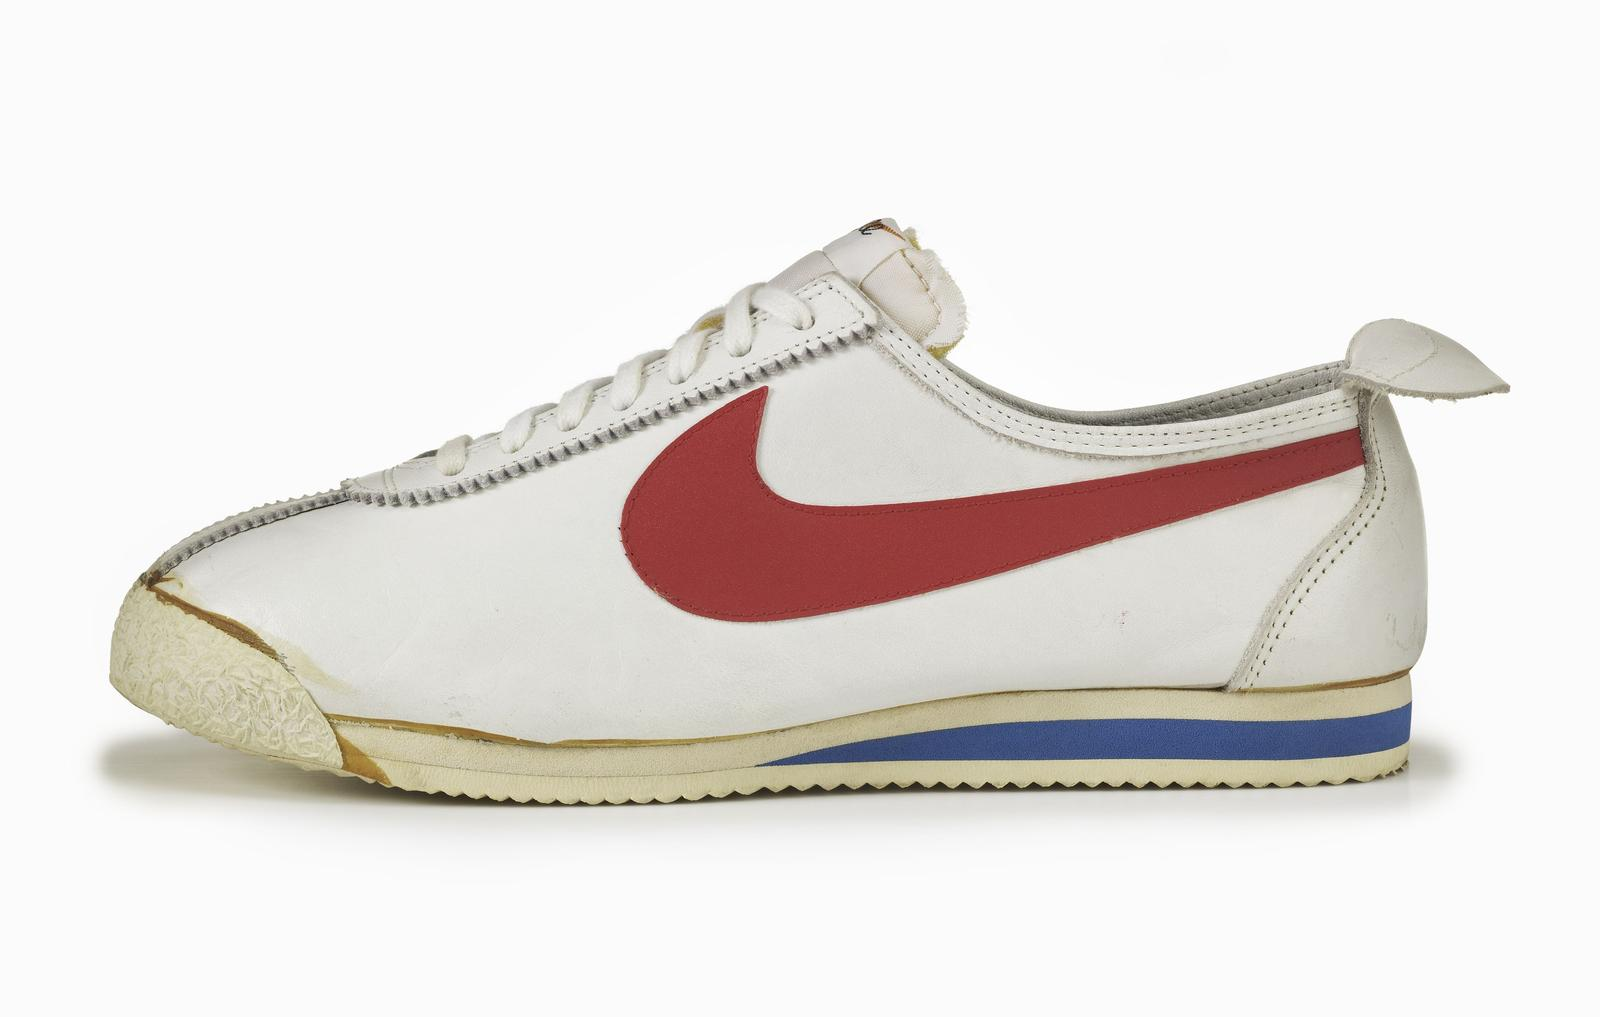 low priced 459de aa51c White red Cortez3. The Nike Cortez